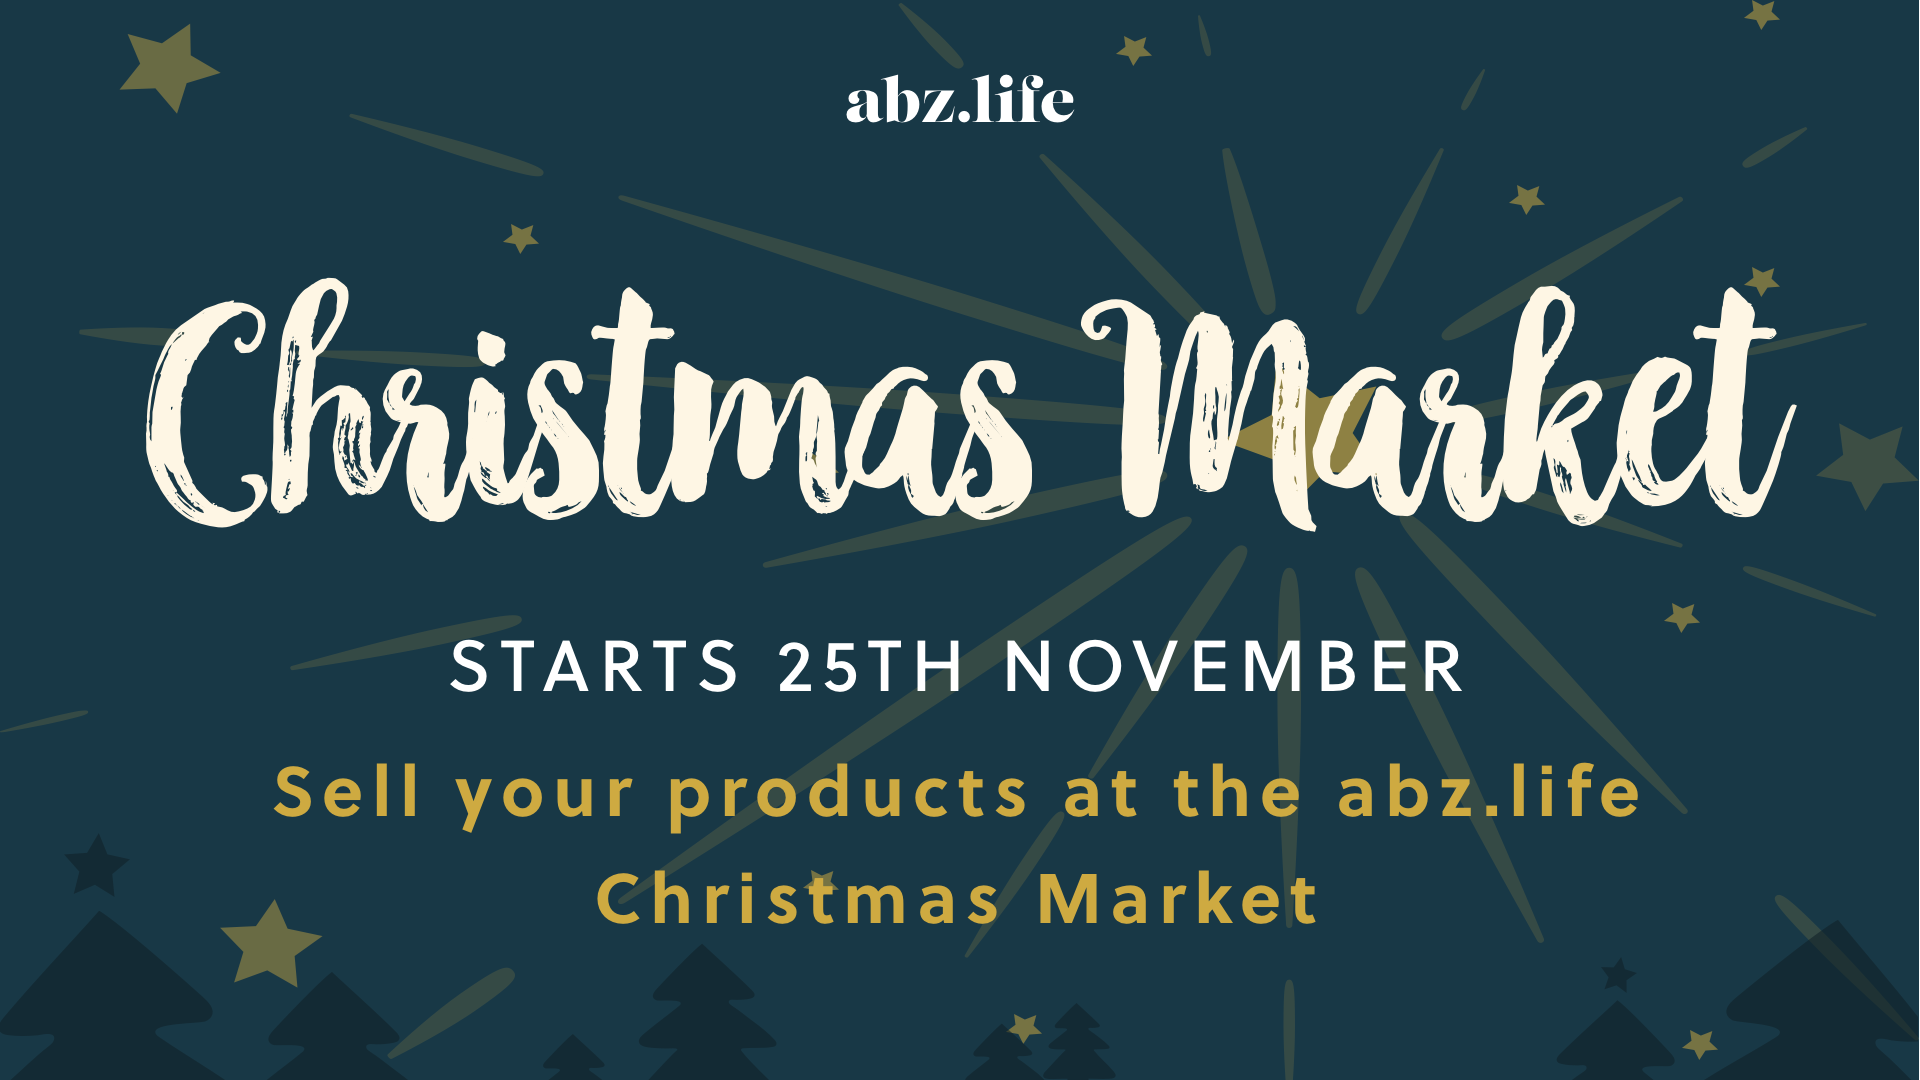 How to become a seller at the abz.life Christmas Market